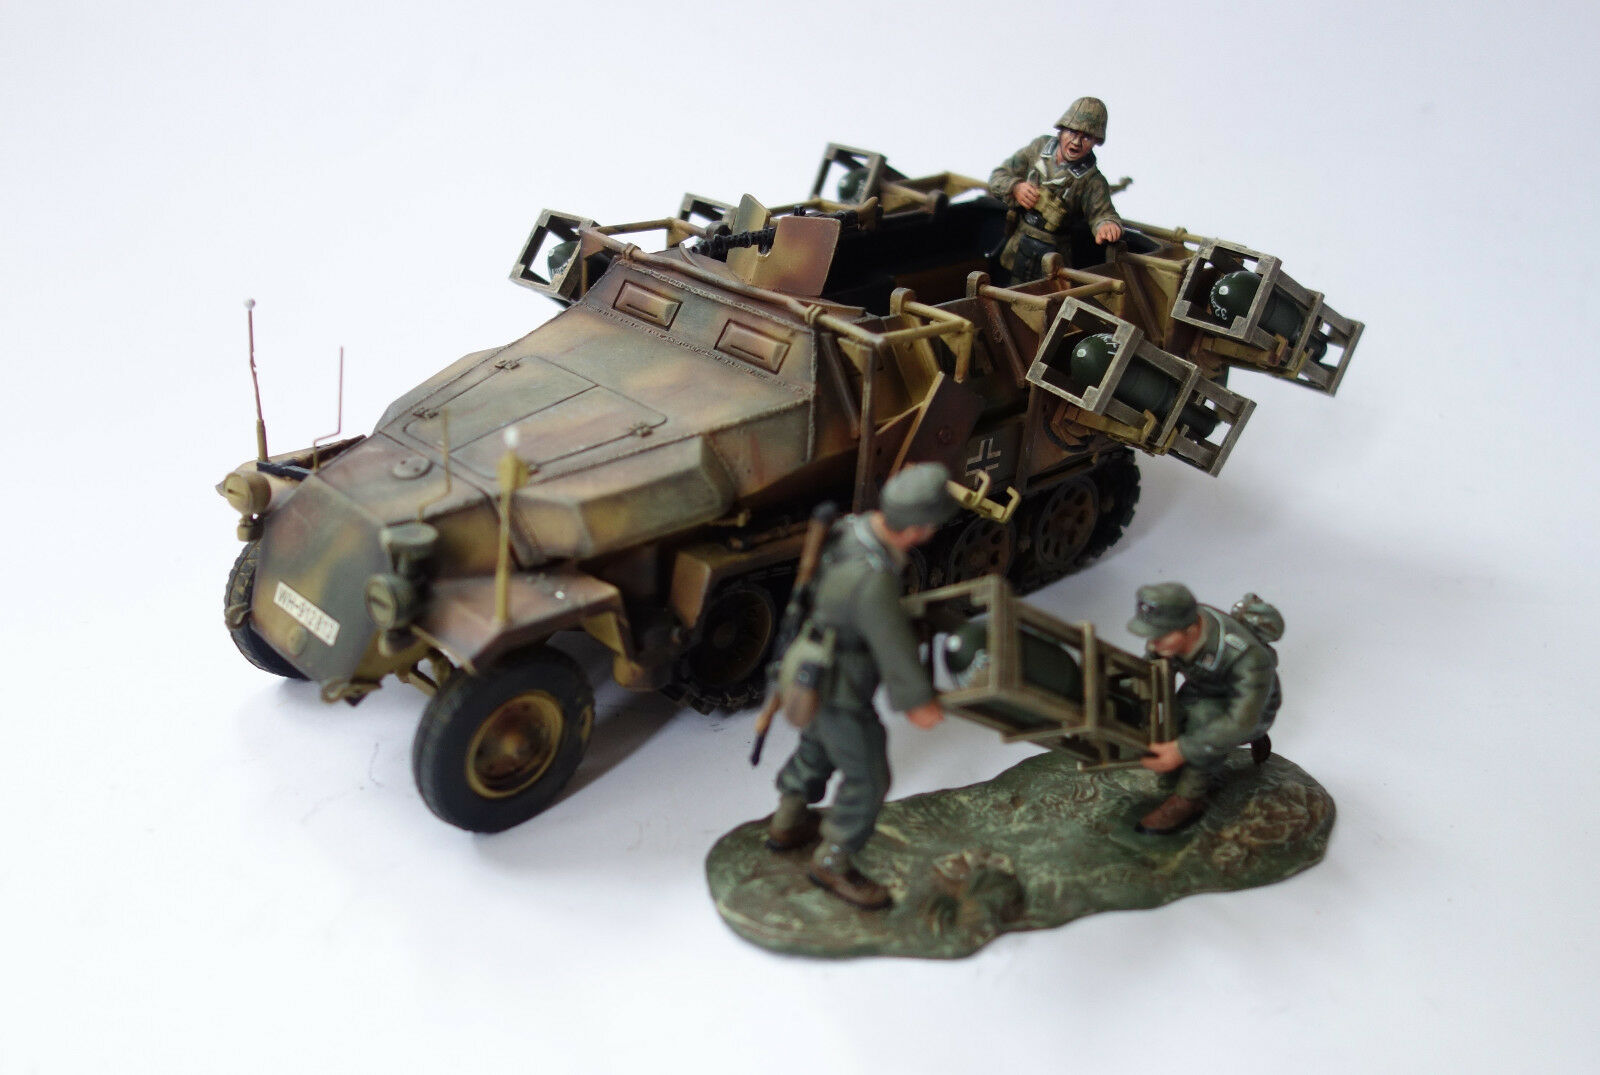 Figarti Miniatures SD. Kfz. 251 1 II ground dive-bomber, 1 30 RMG-008 Limited Edition